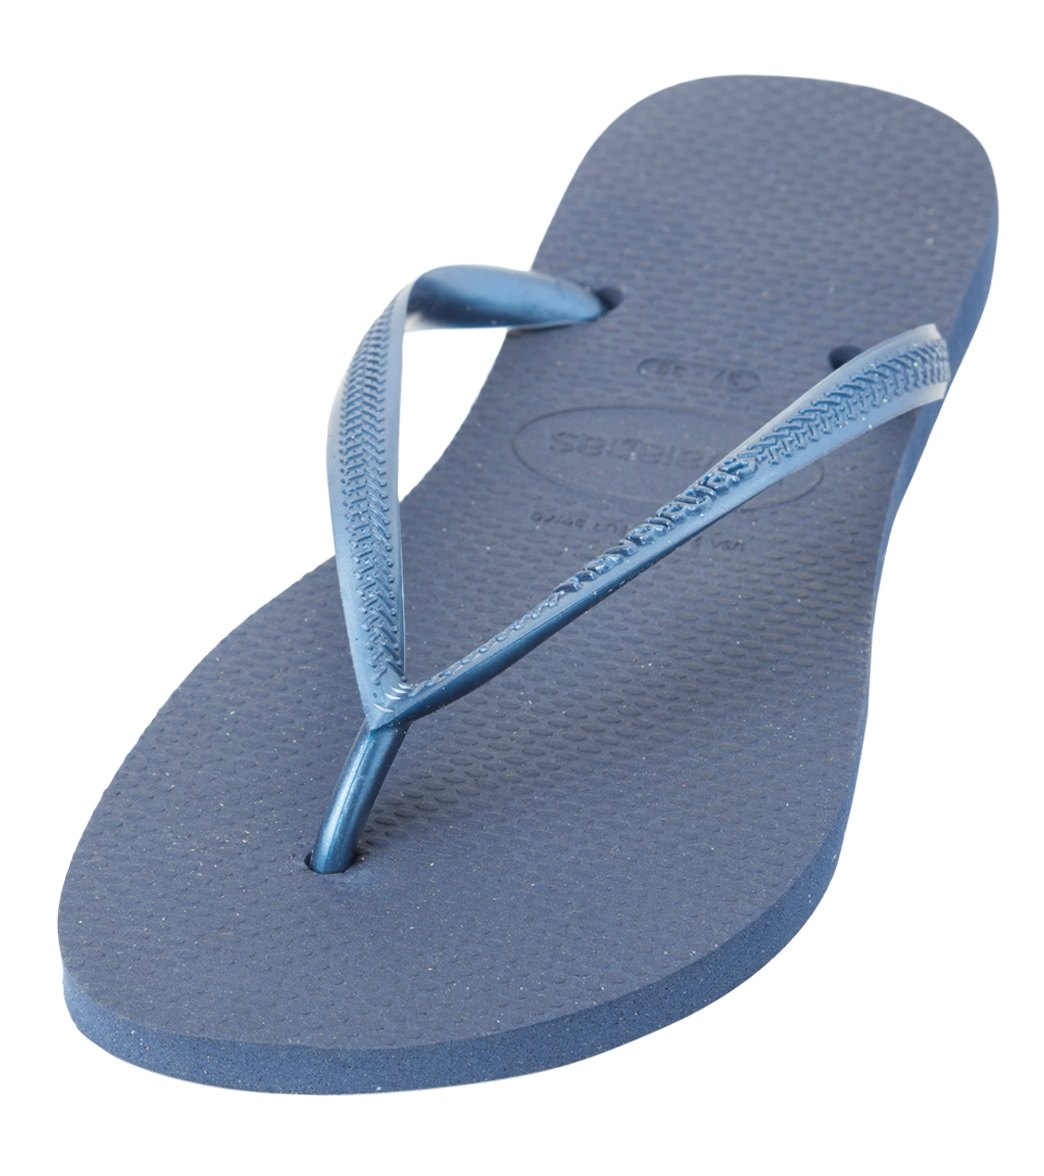 e877ccd95e51 Havaianas Women s Slim Flip Flop at SwimOutlet.com